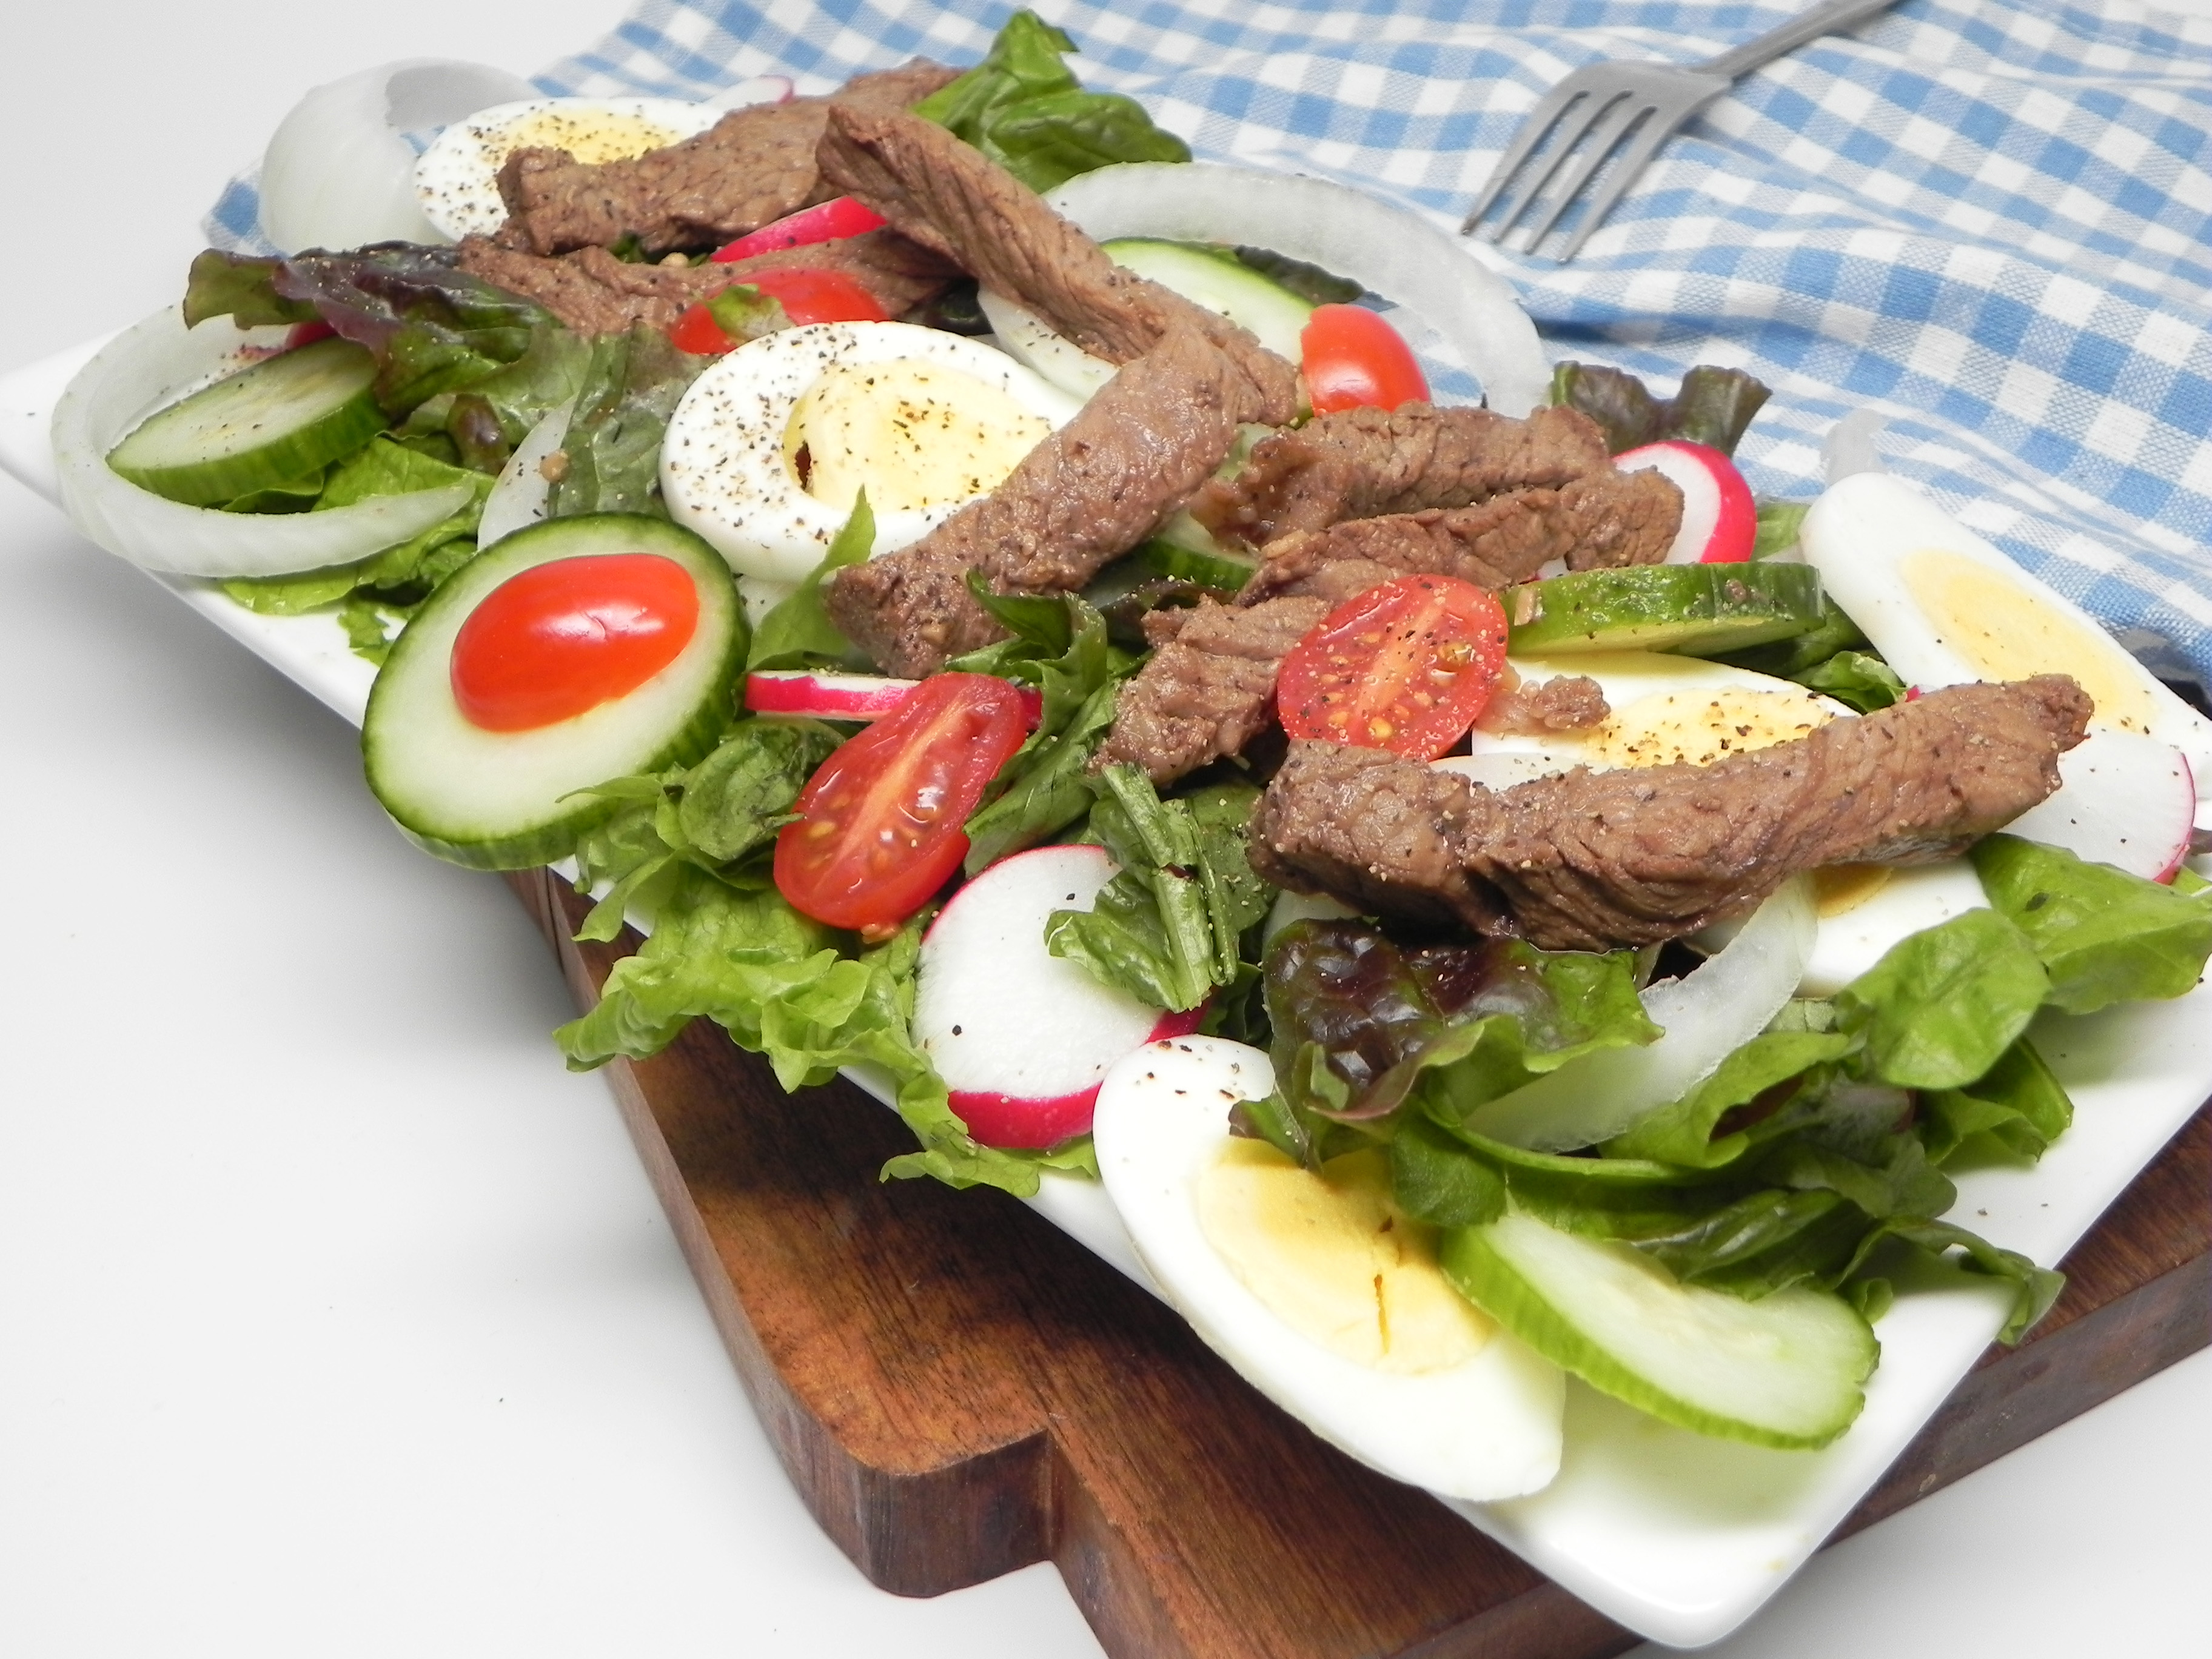 Layered Beef Salad with Warm Dressing